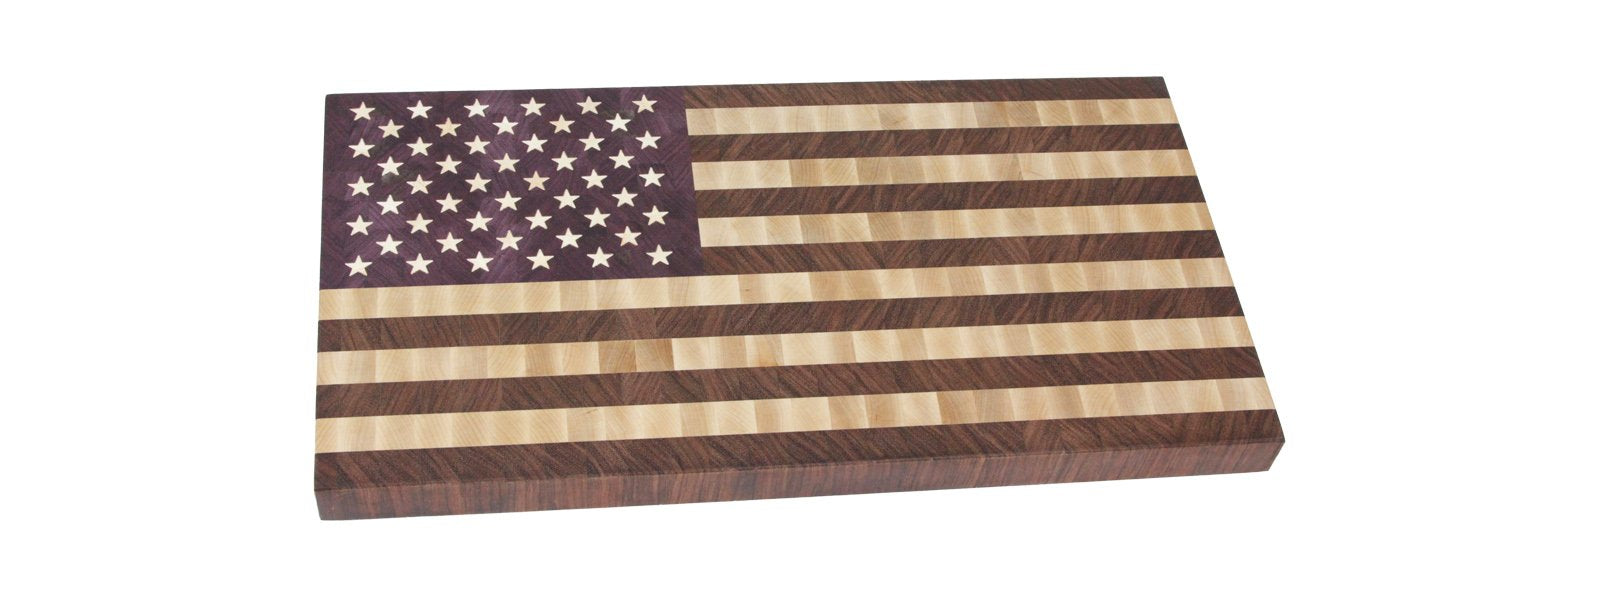 American Flag end grain cutting board